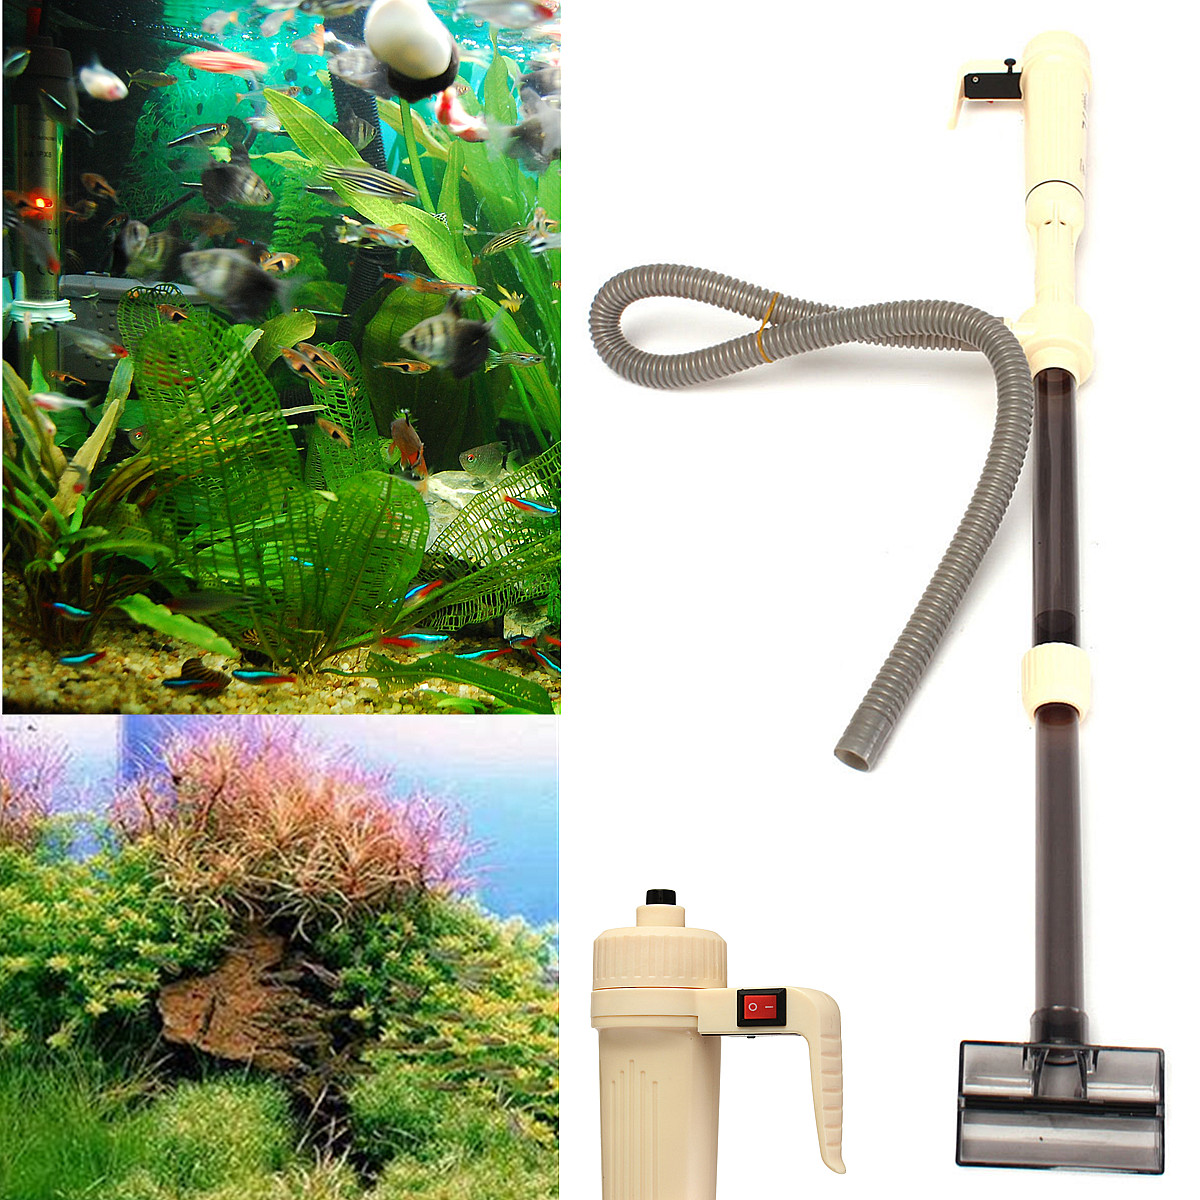 Aquarium fish tank battery vacuum syphon cleaner review - Detail Image